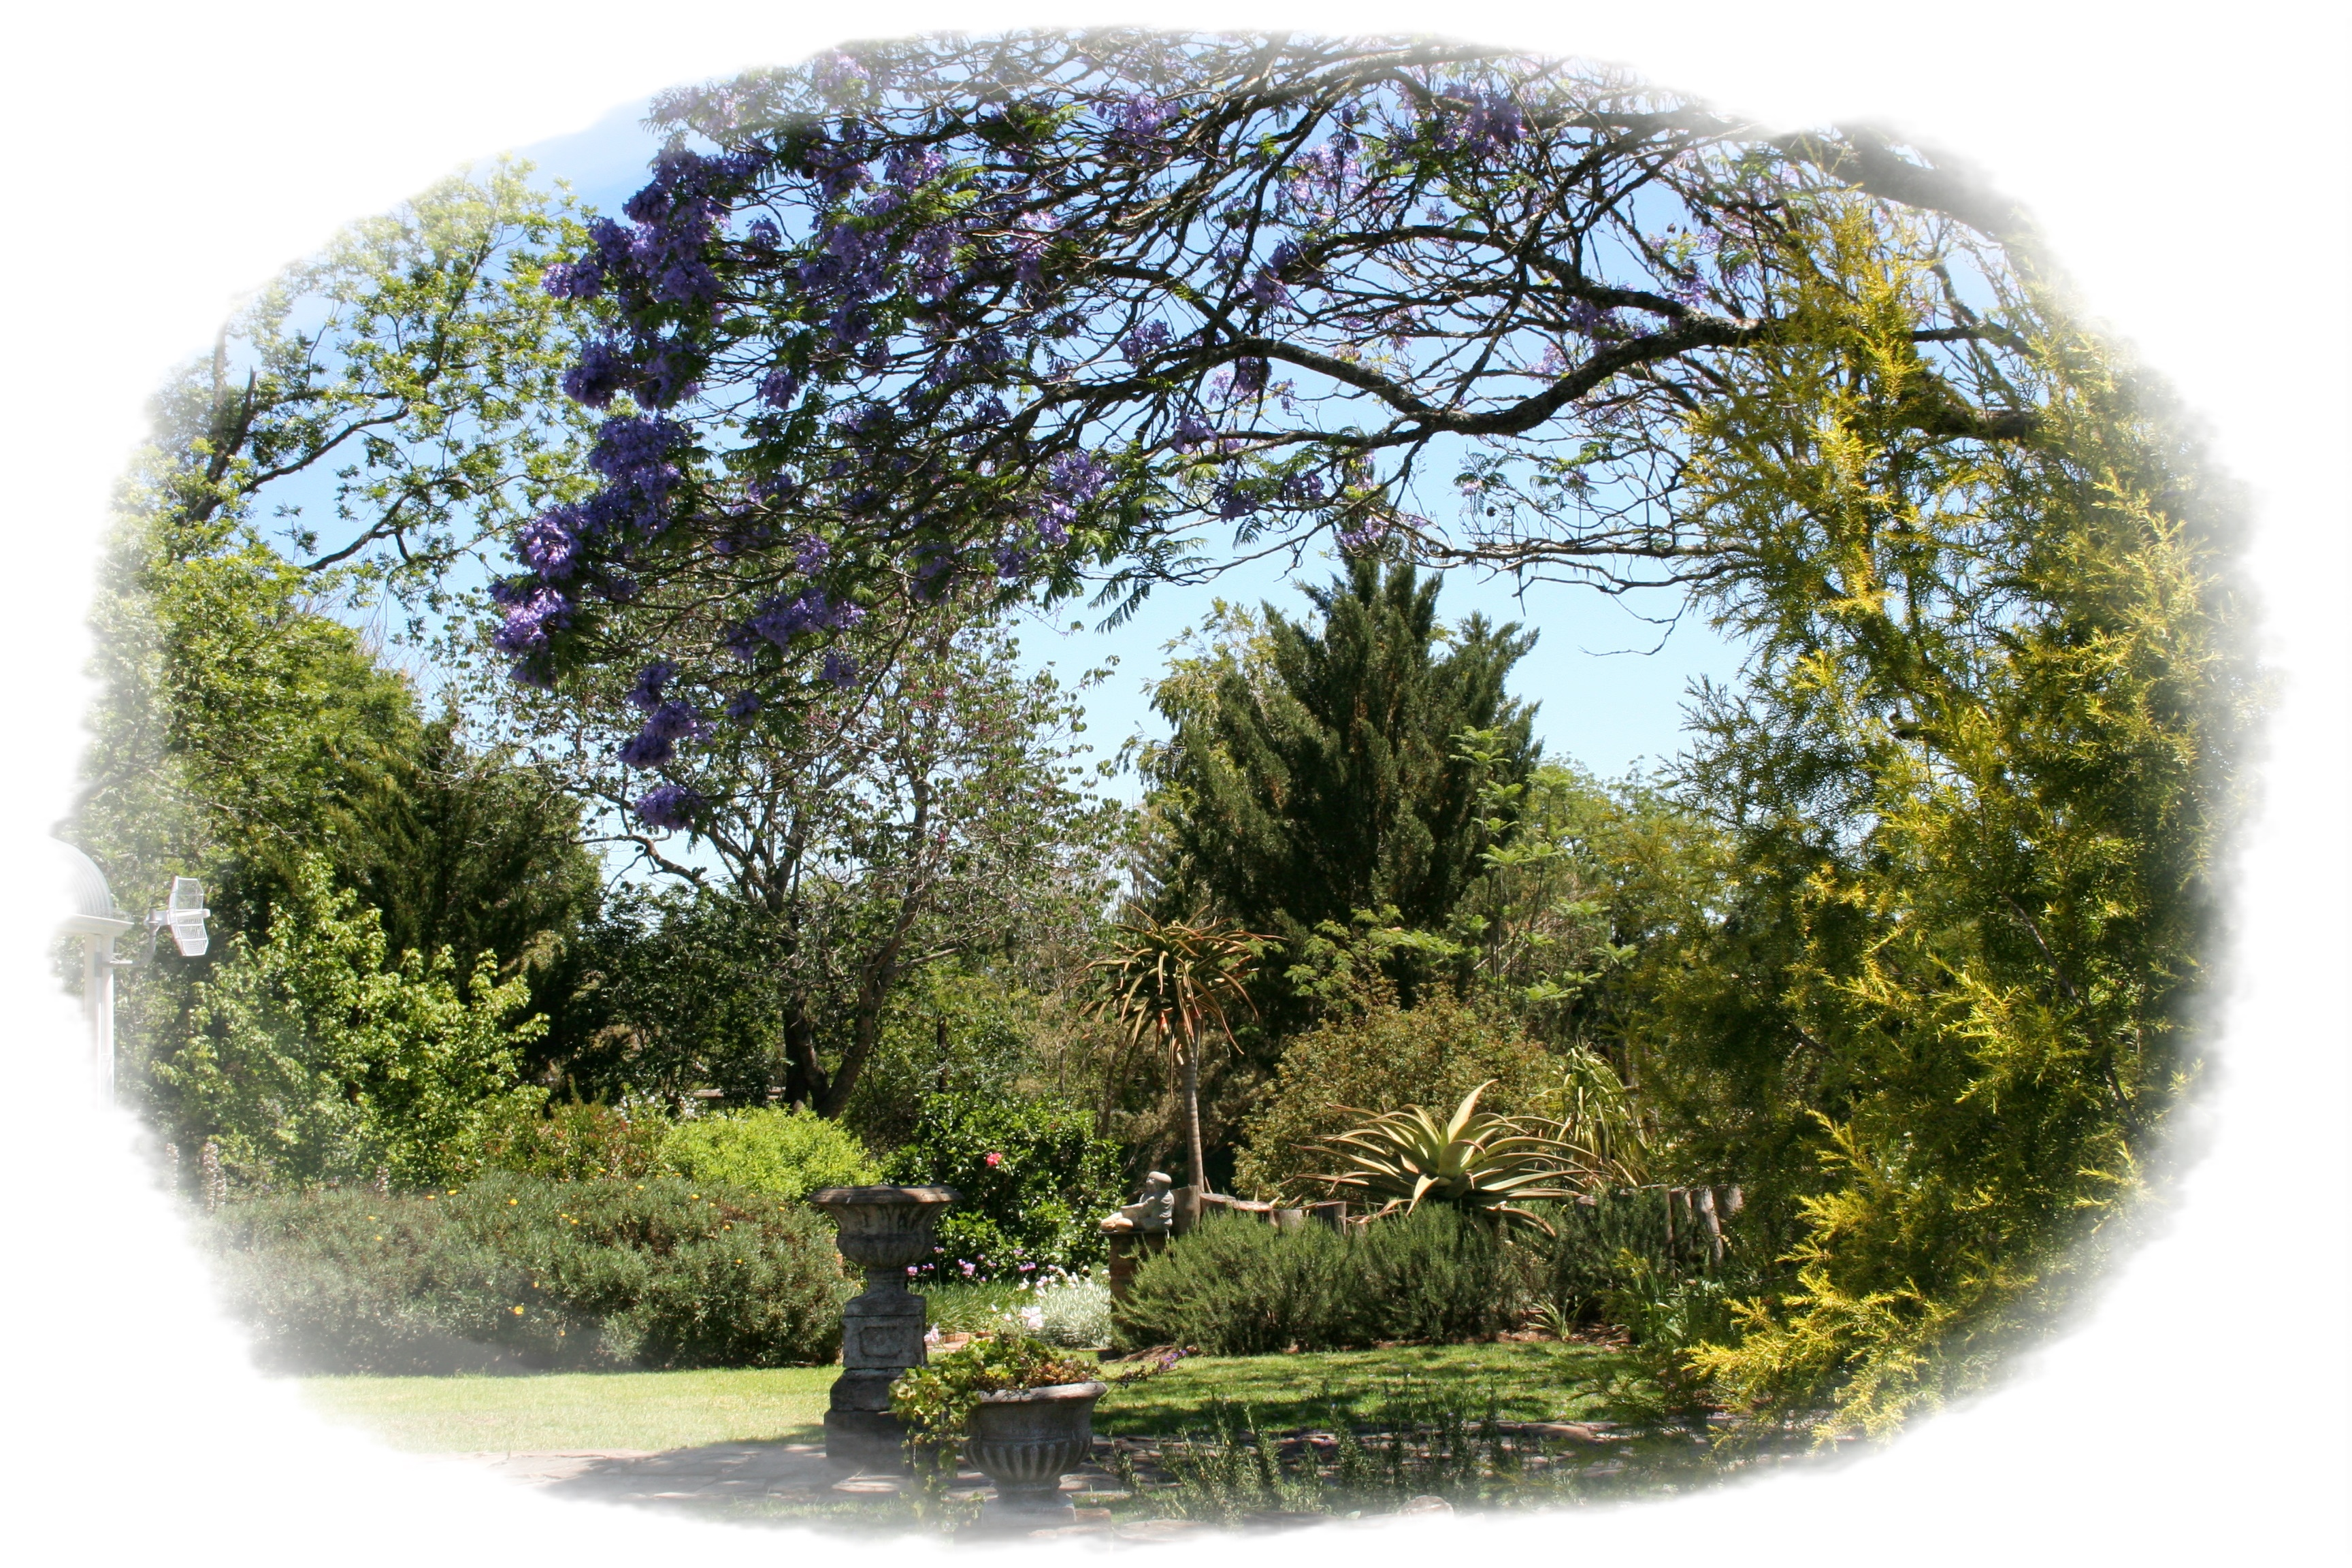 tpotg-under-jacaranda-trees-with-frame-01